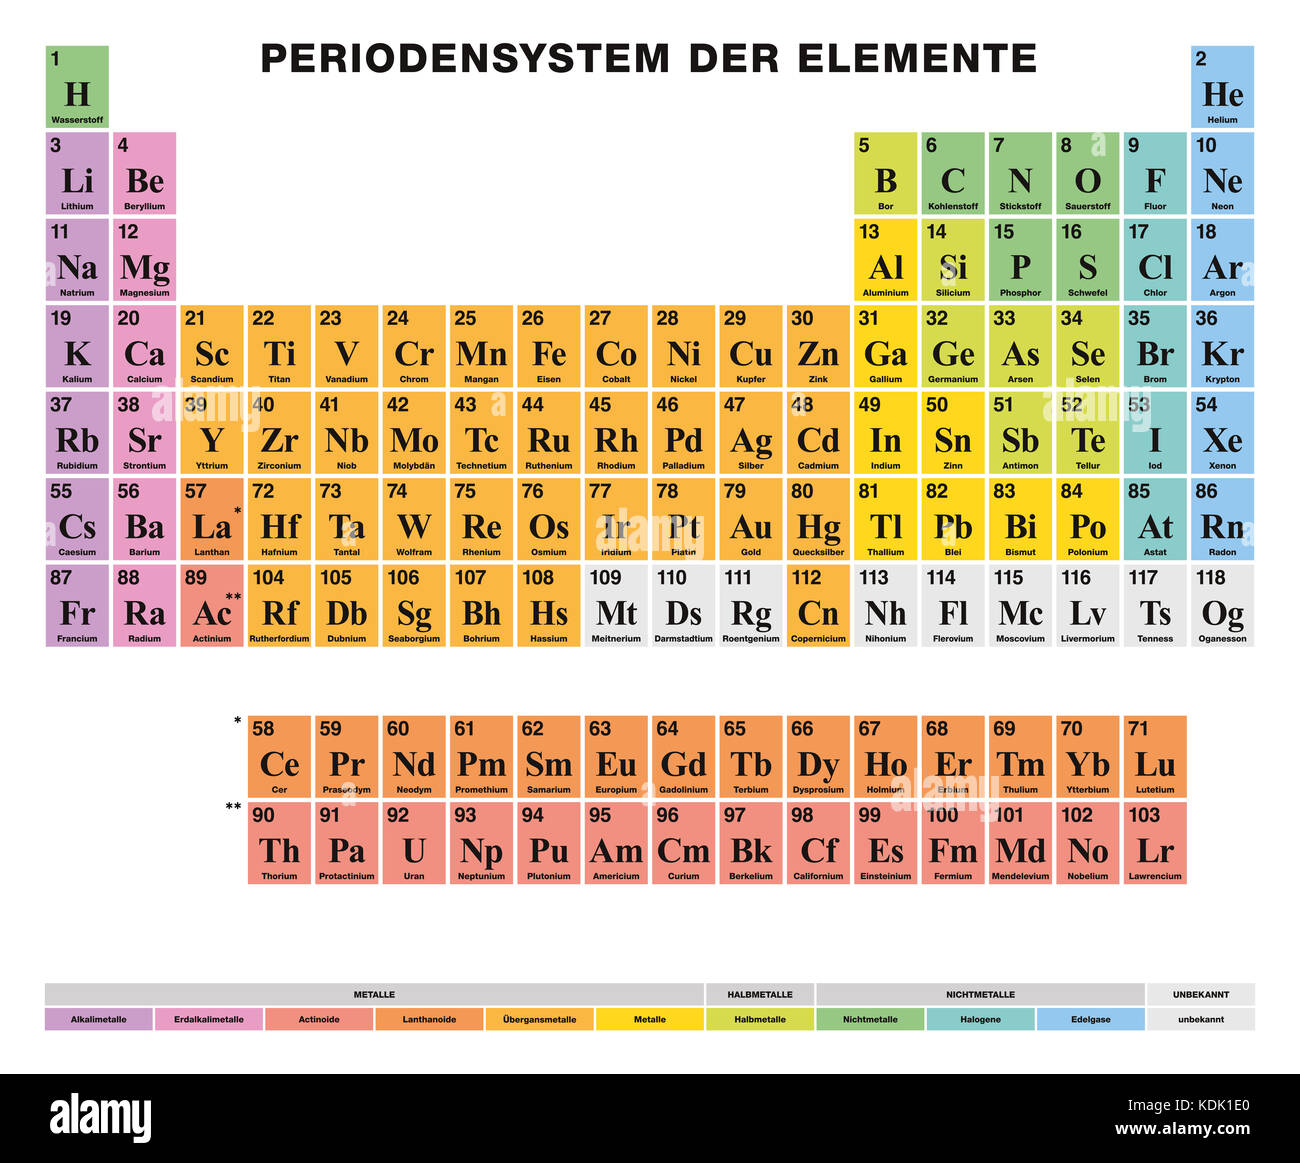 Periodic table of the elements german labeling tabular periodic table of the elements german labeling tabular arrangement of 118 chemical elements atomic numbers symbols names and color cells buycottarizona